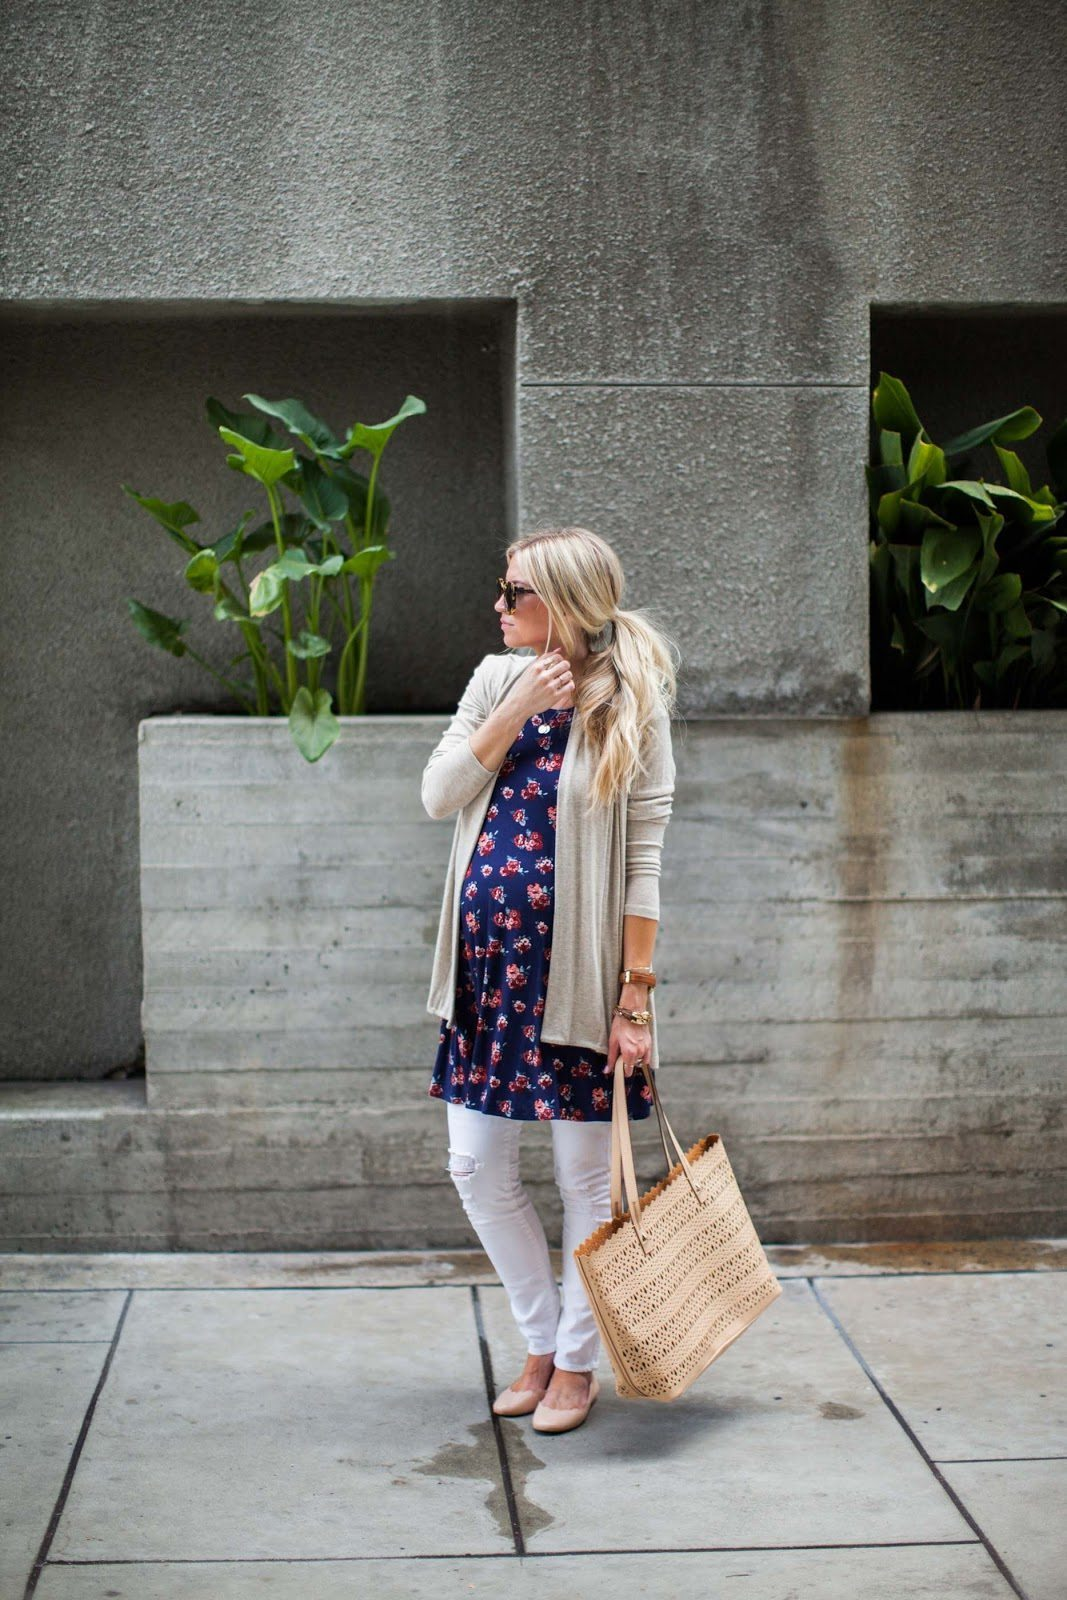 SUMMER COMFORT + MY FAVORITE MATERNITY STYLING TIP!